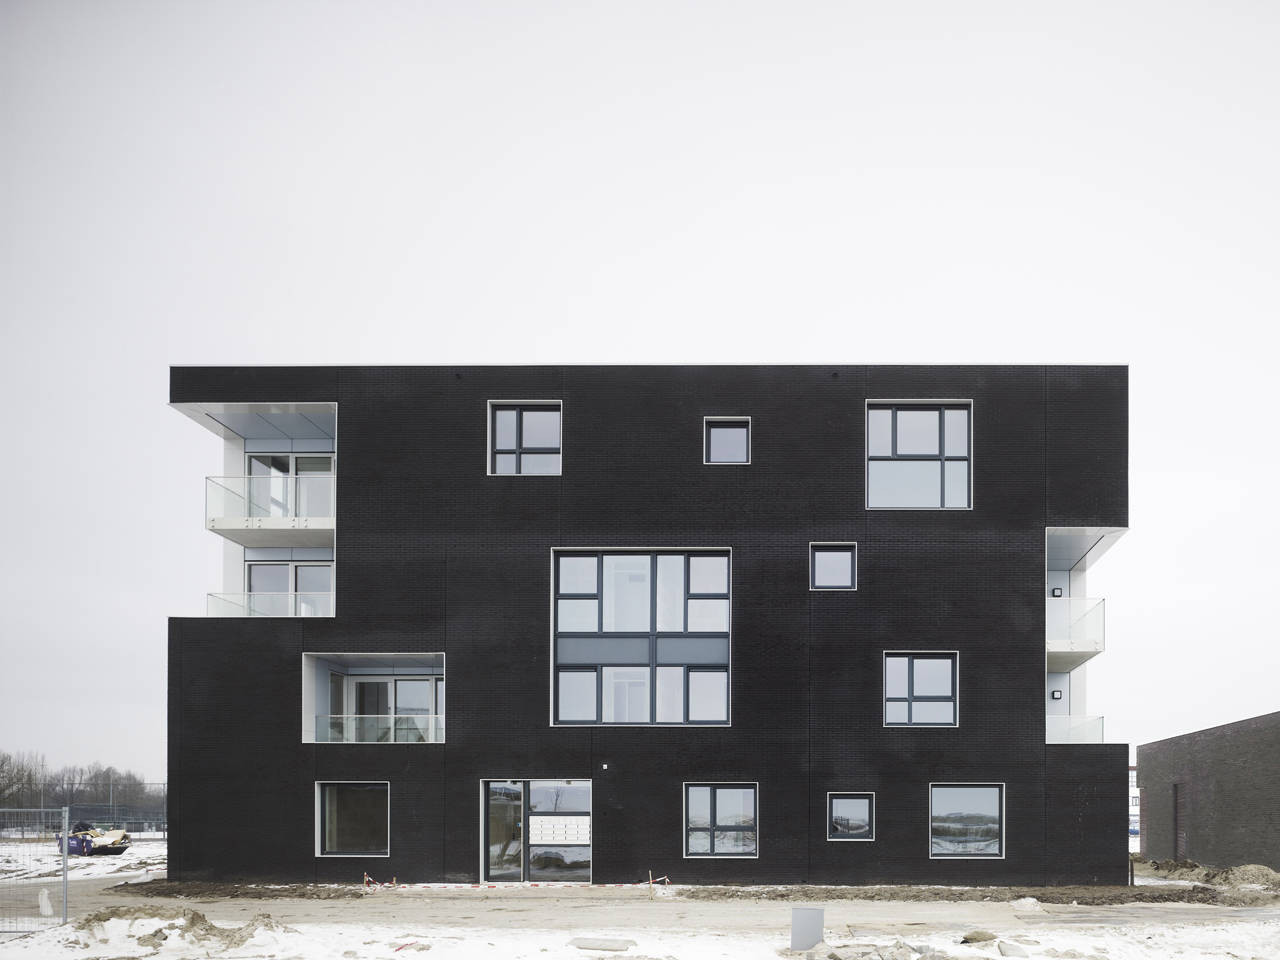 29 Apartments in Blaricum / Casanova & Hernandez Architects, © Christian Richters